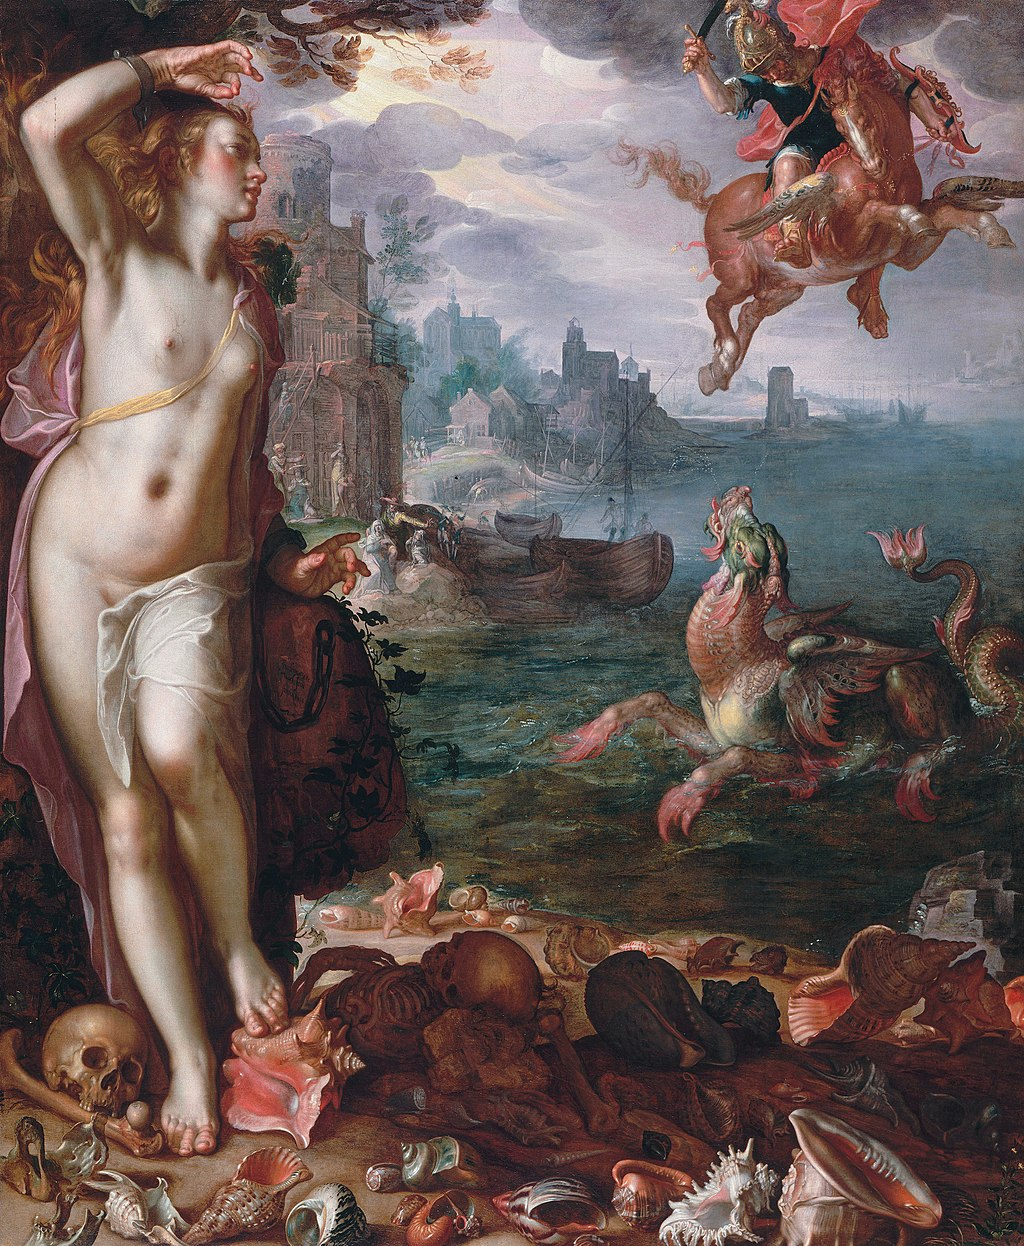 Persus and Andromeda by Joachim Wtewael